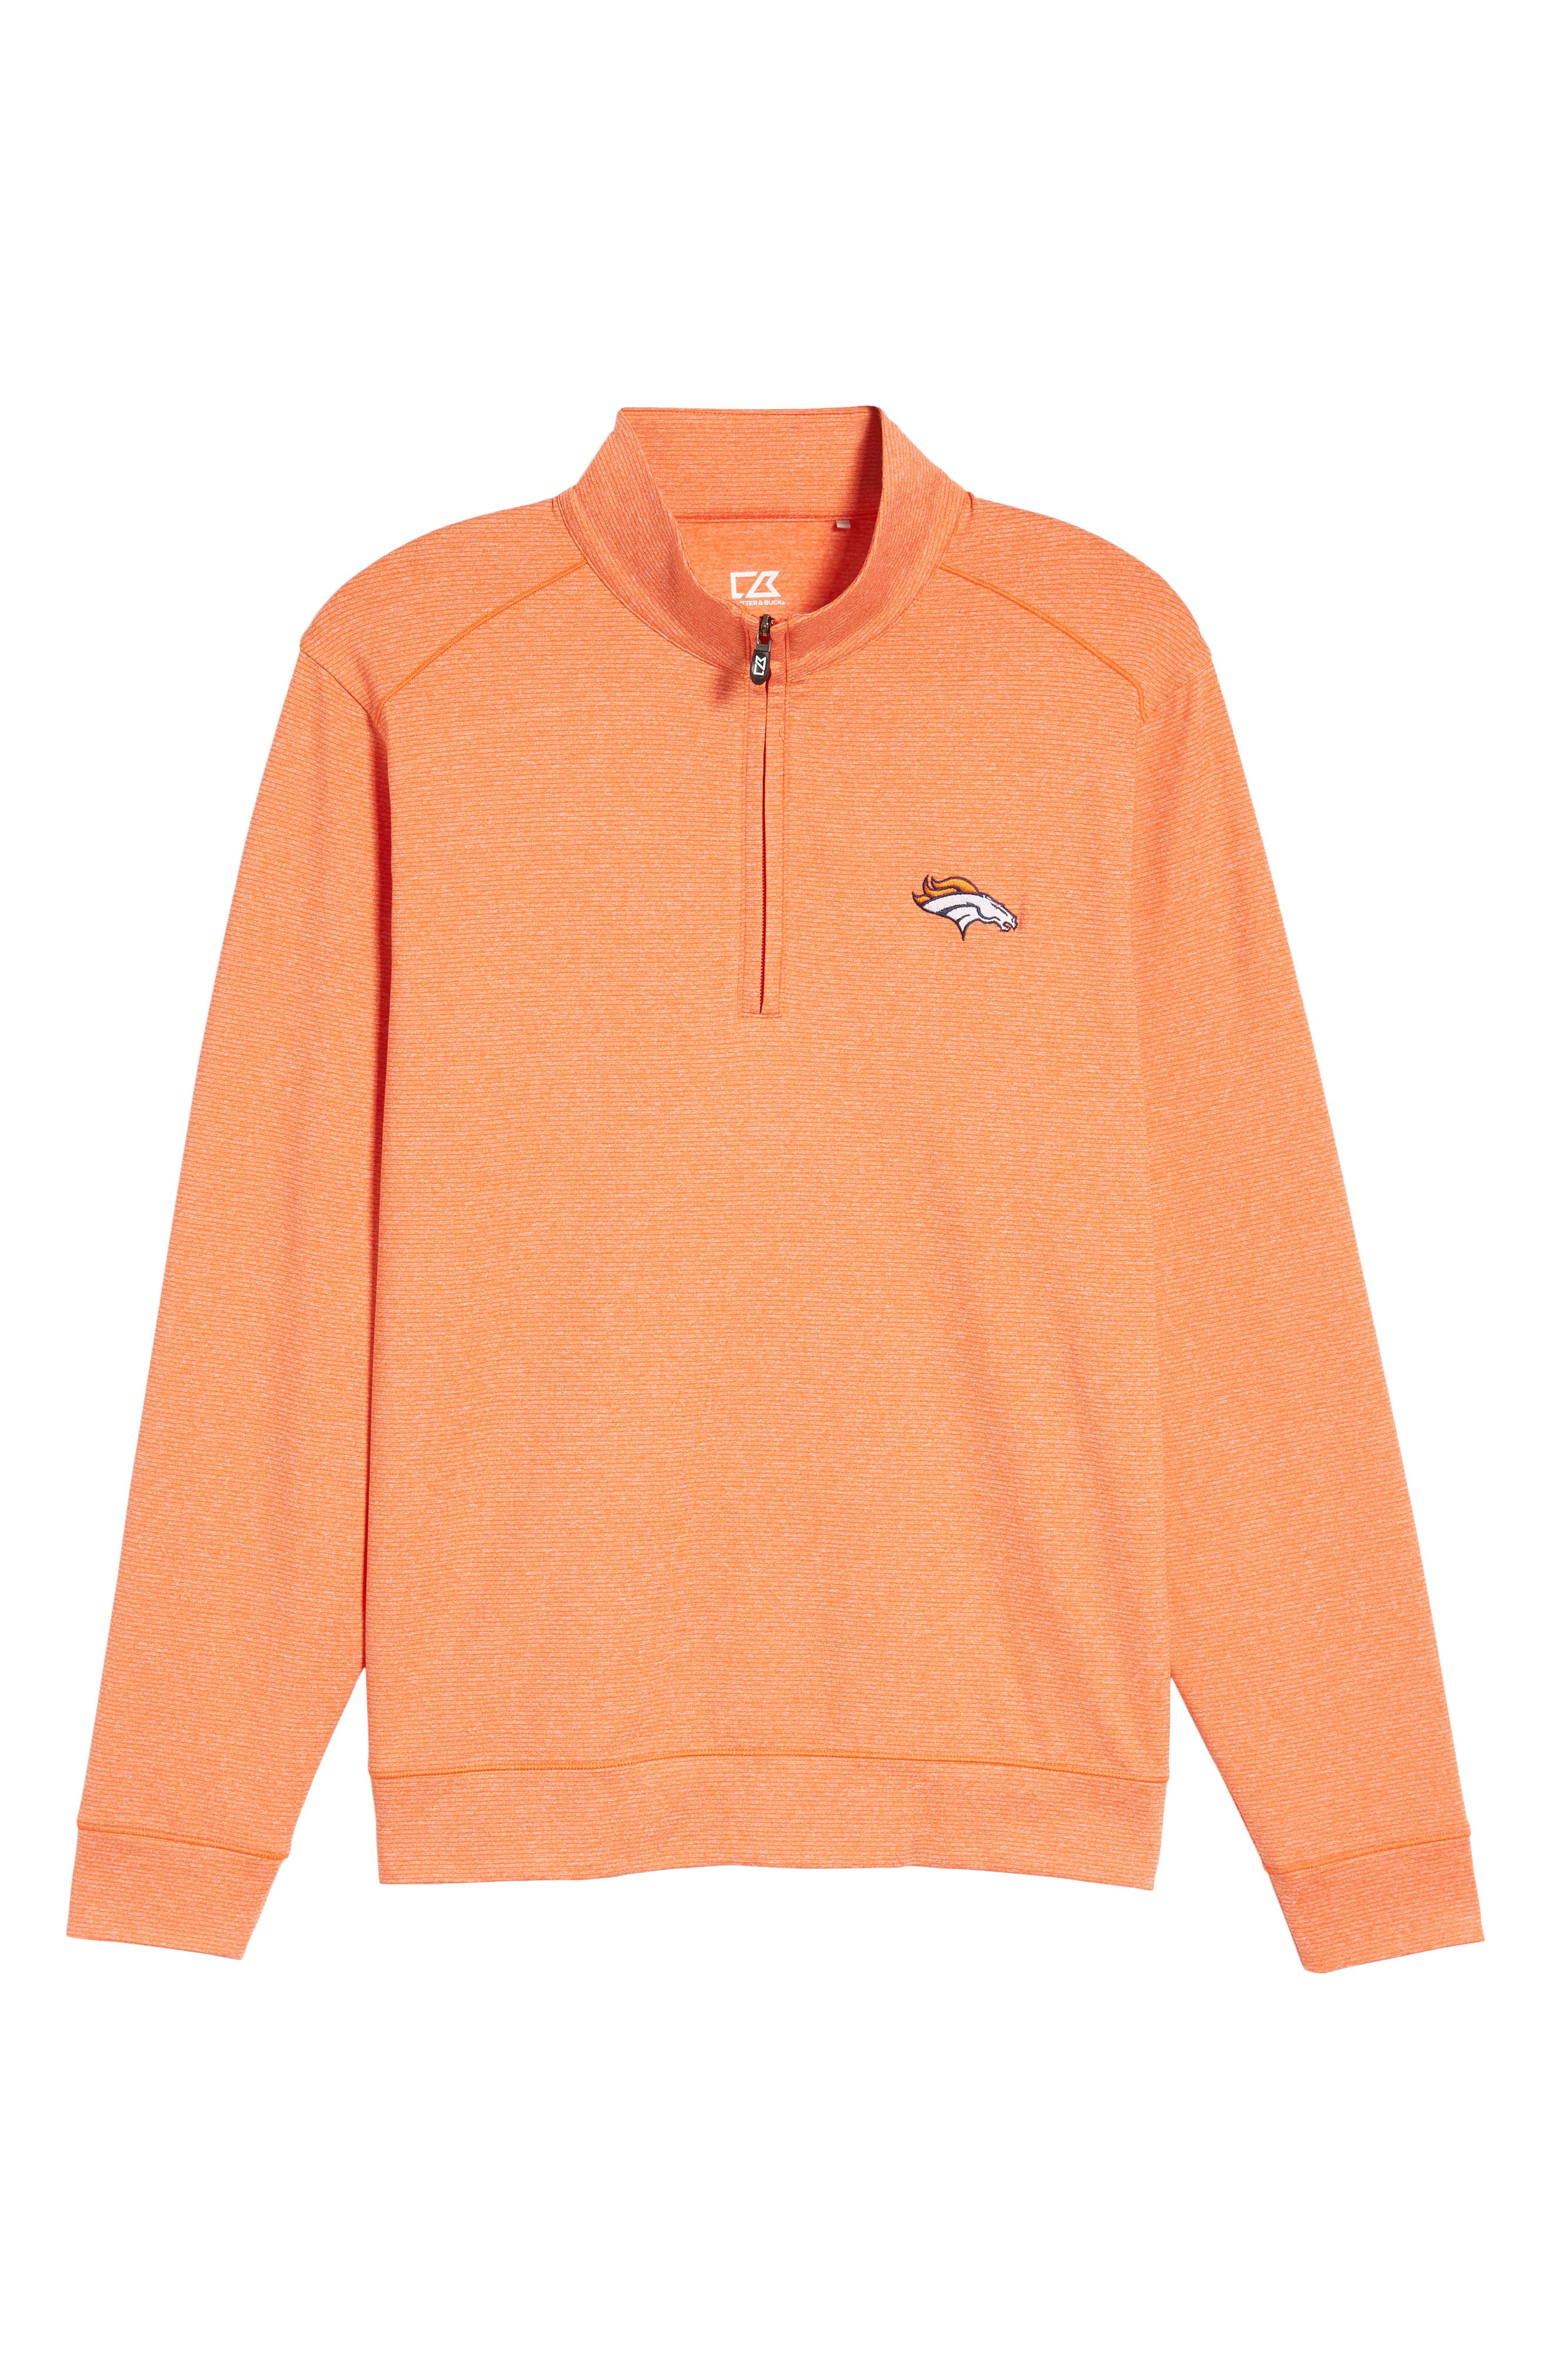 Shoreline - Denver Broncos Half Zip Pullover,                             Alternate thumbnail 6, color,                             816